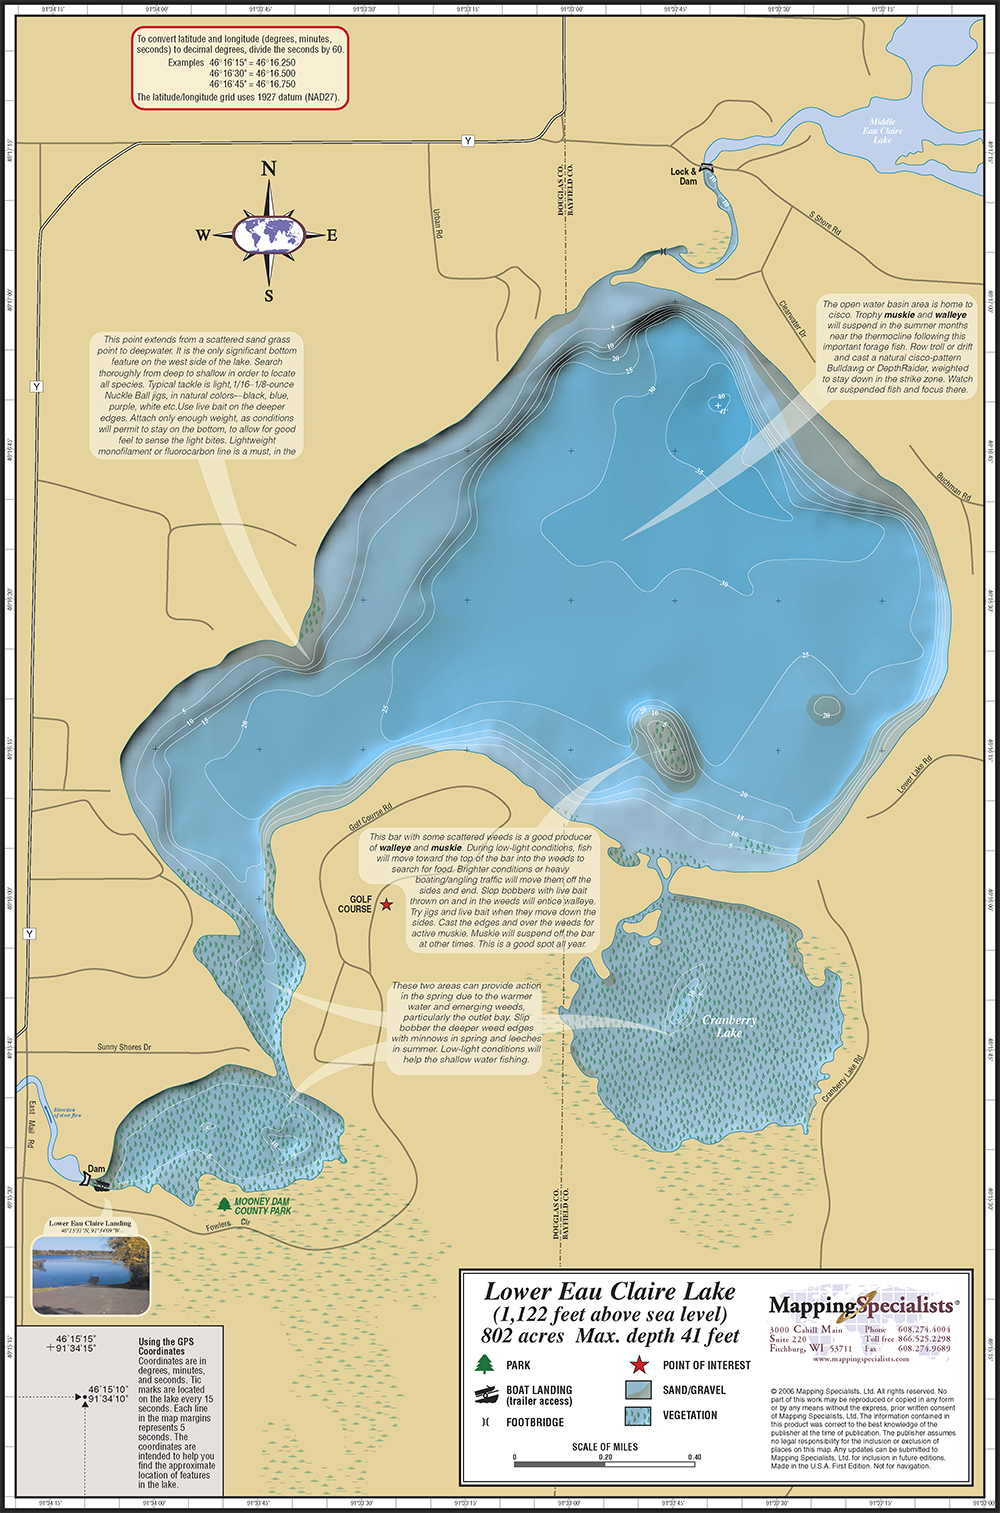 lake eau claire map Lower Eau Claire Lake Fold Map lake eau claire map